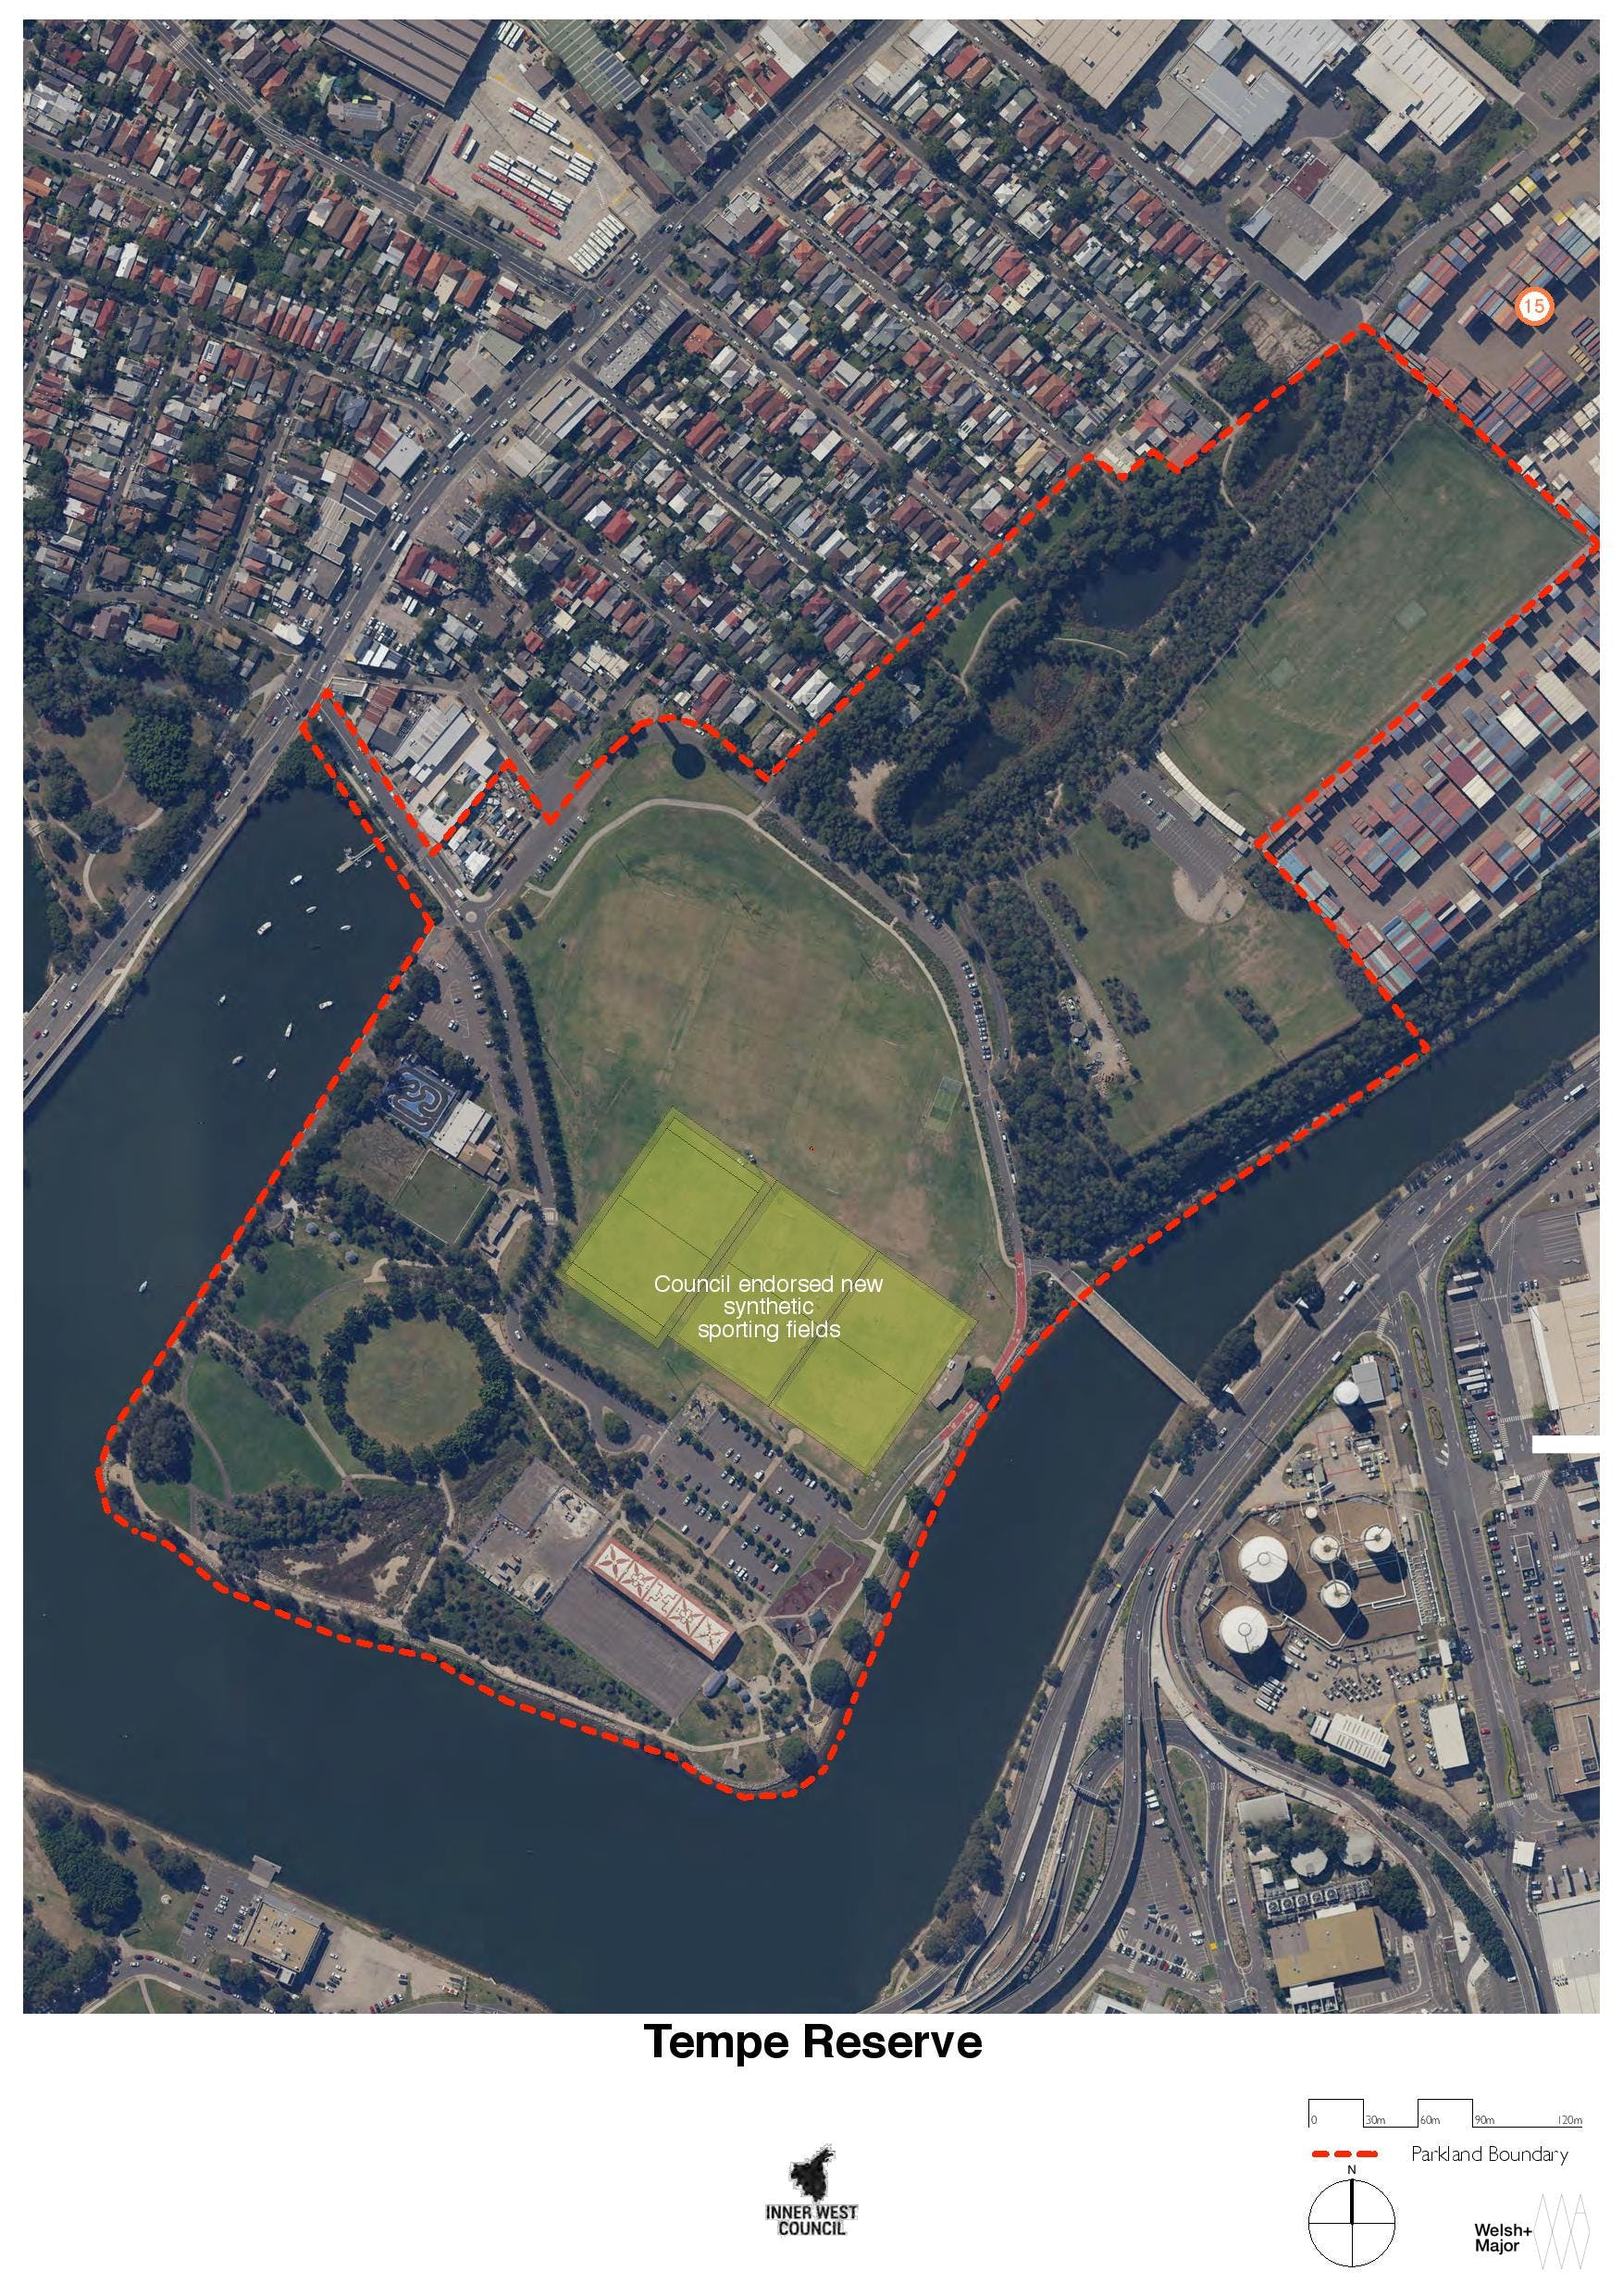 Tempe Reserve map